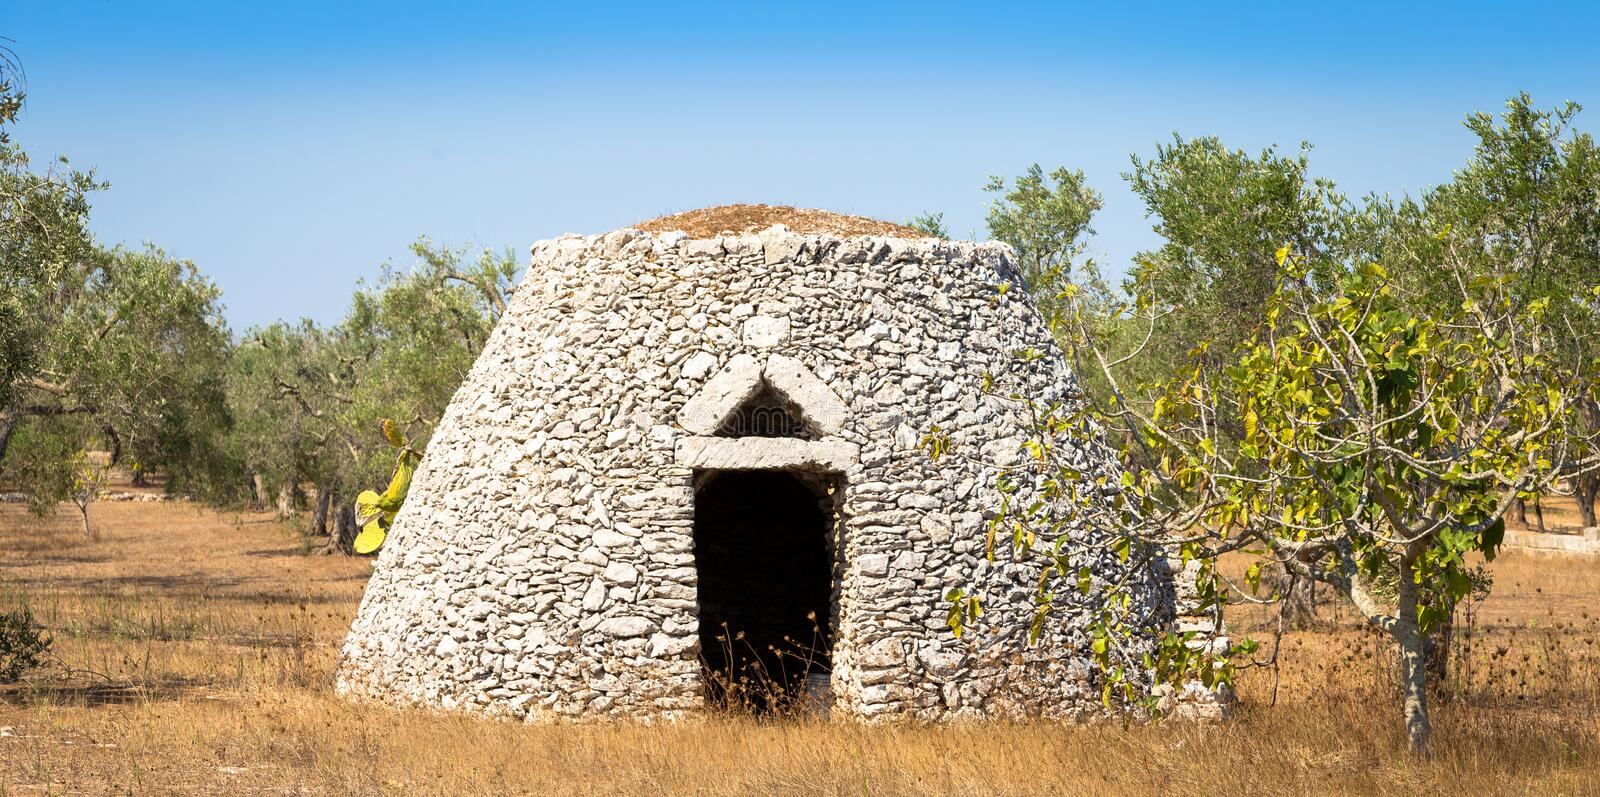 Puglia Region, Italy. Traditional warehouse made of stone. This traditional warehouse is named Furnieddhu in local dialect. All structure made of stone, used to royalty free stock image